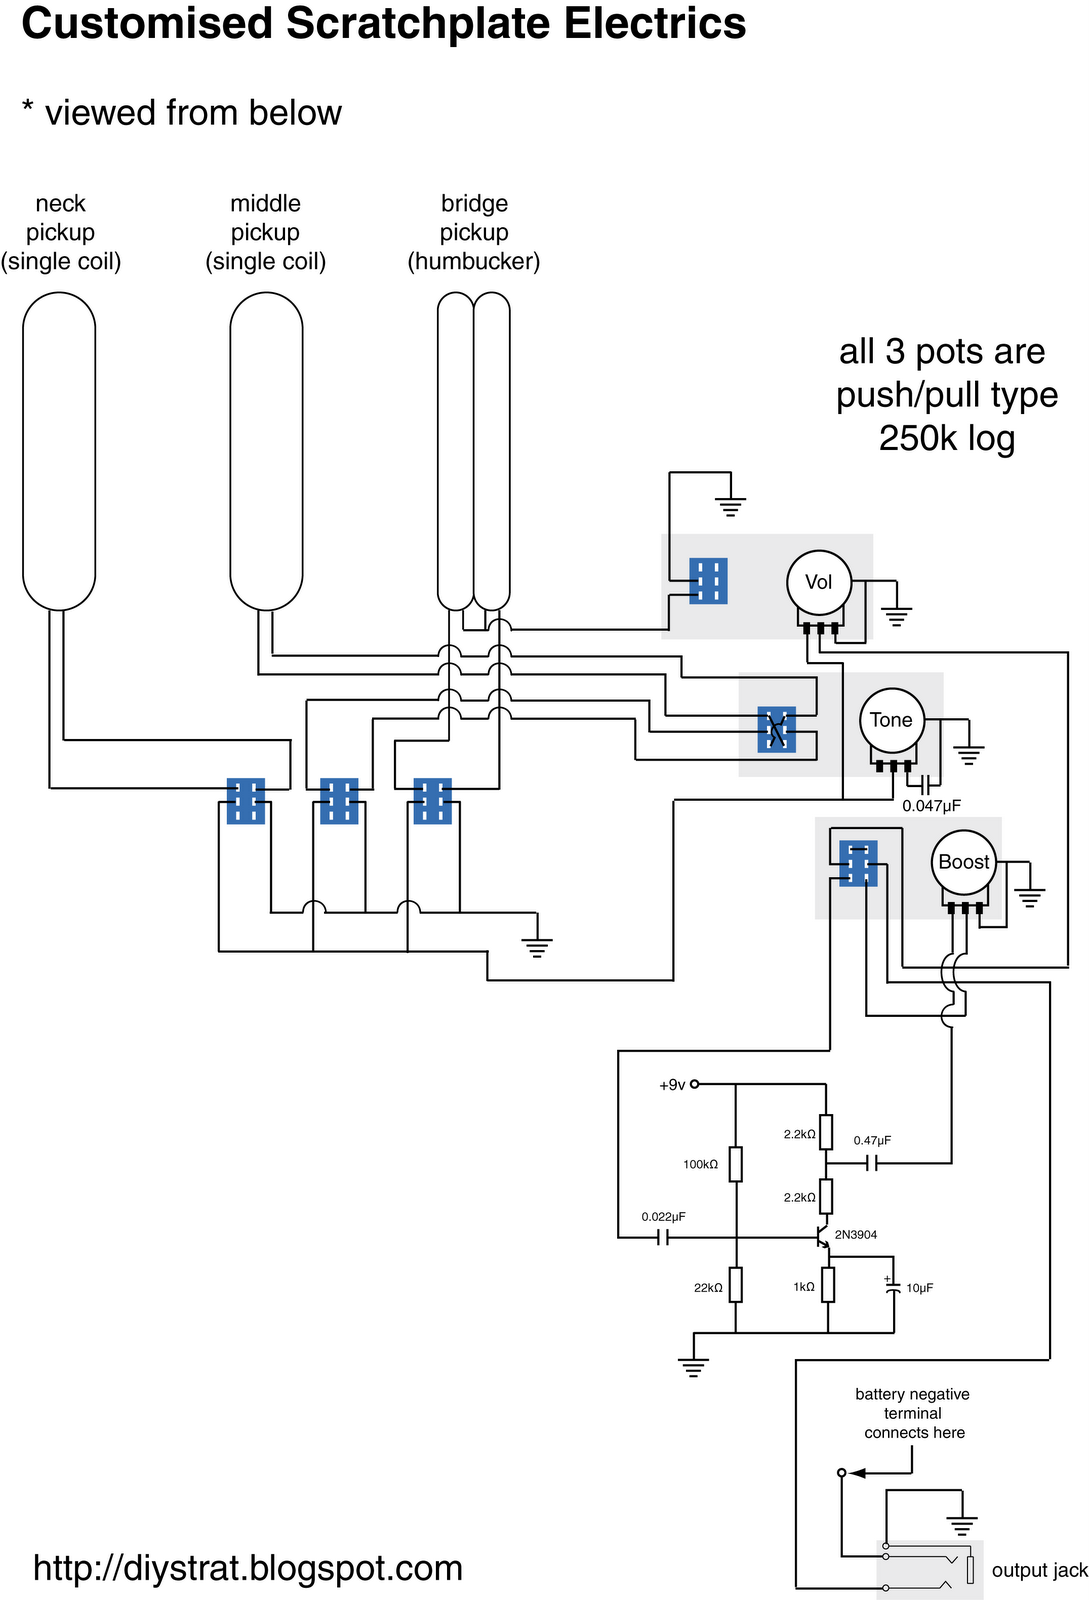 April 2008 Diy Strat And Other Guitar Audio Projects Humbucker Schematics Ok Here Are The For Electrics Click Bigger Image It Is Viewed From Below Remember That This Based Around Two Single Coils A